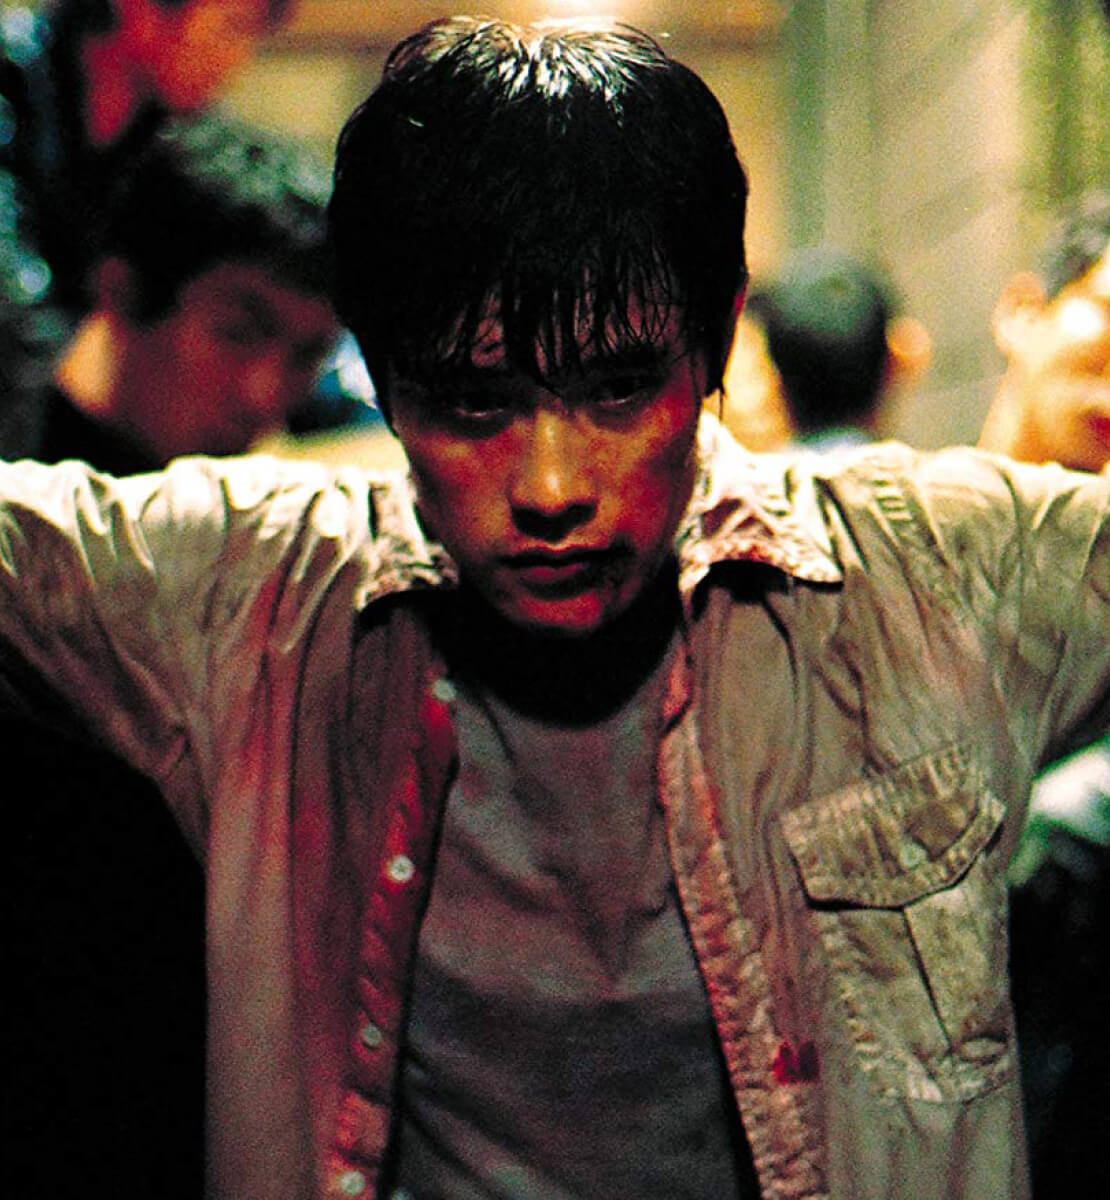 Shot from the film, depicting Sun-woo (Byung-hun Lee) standing bloodied and battered in a dark corridor